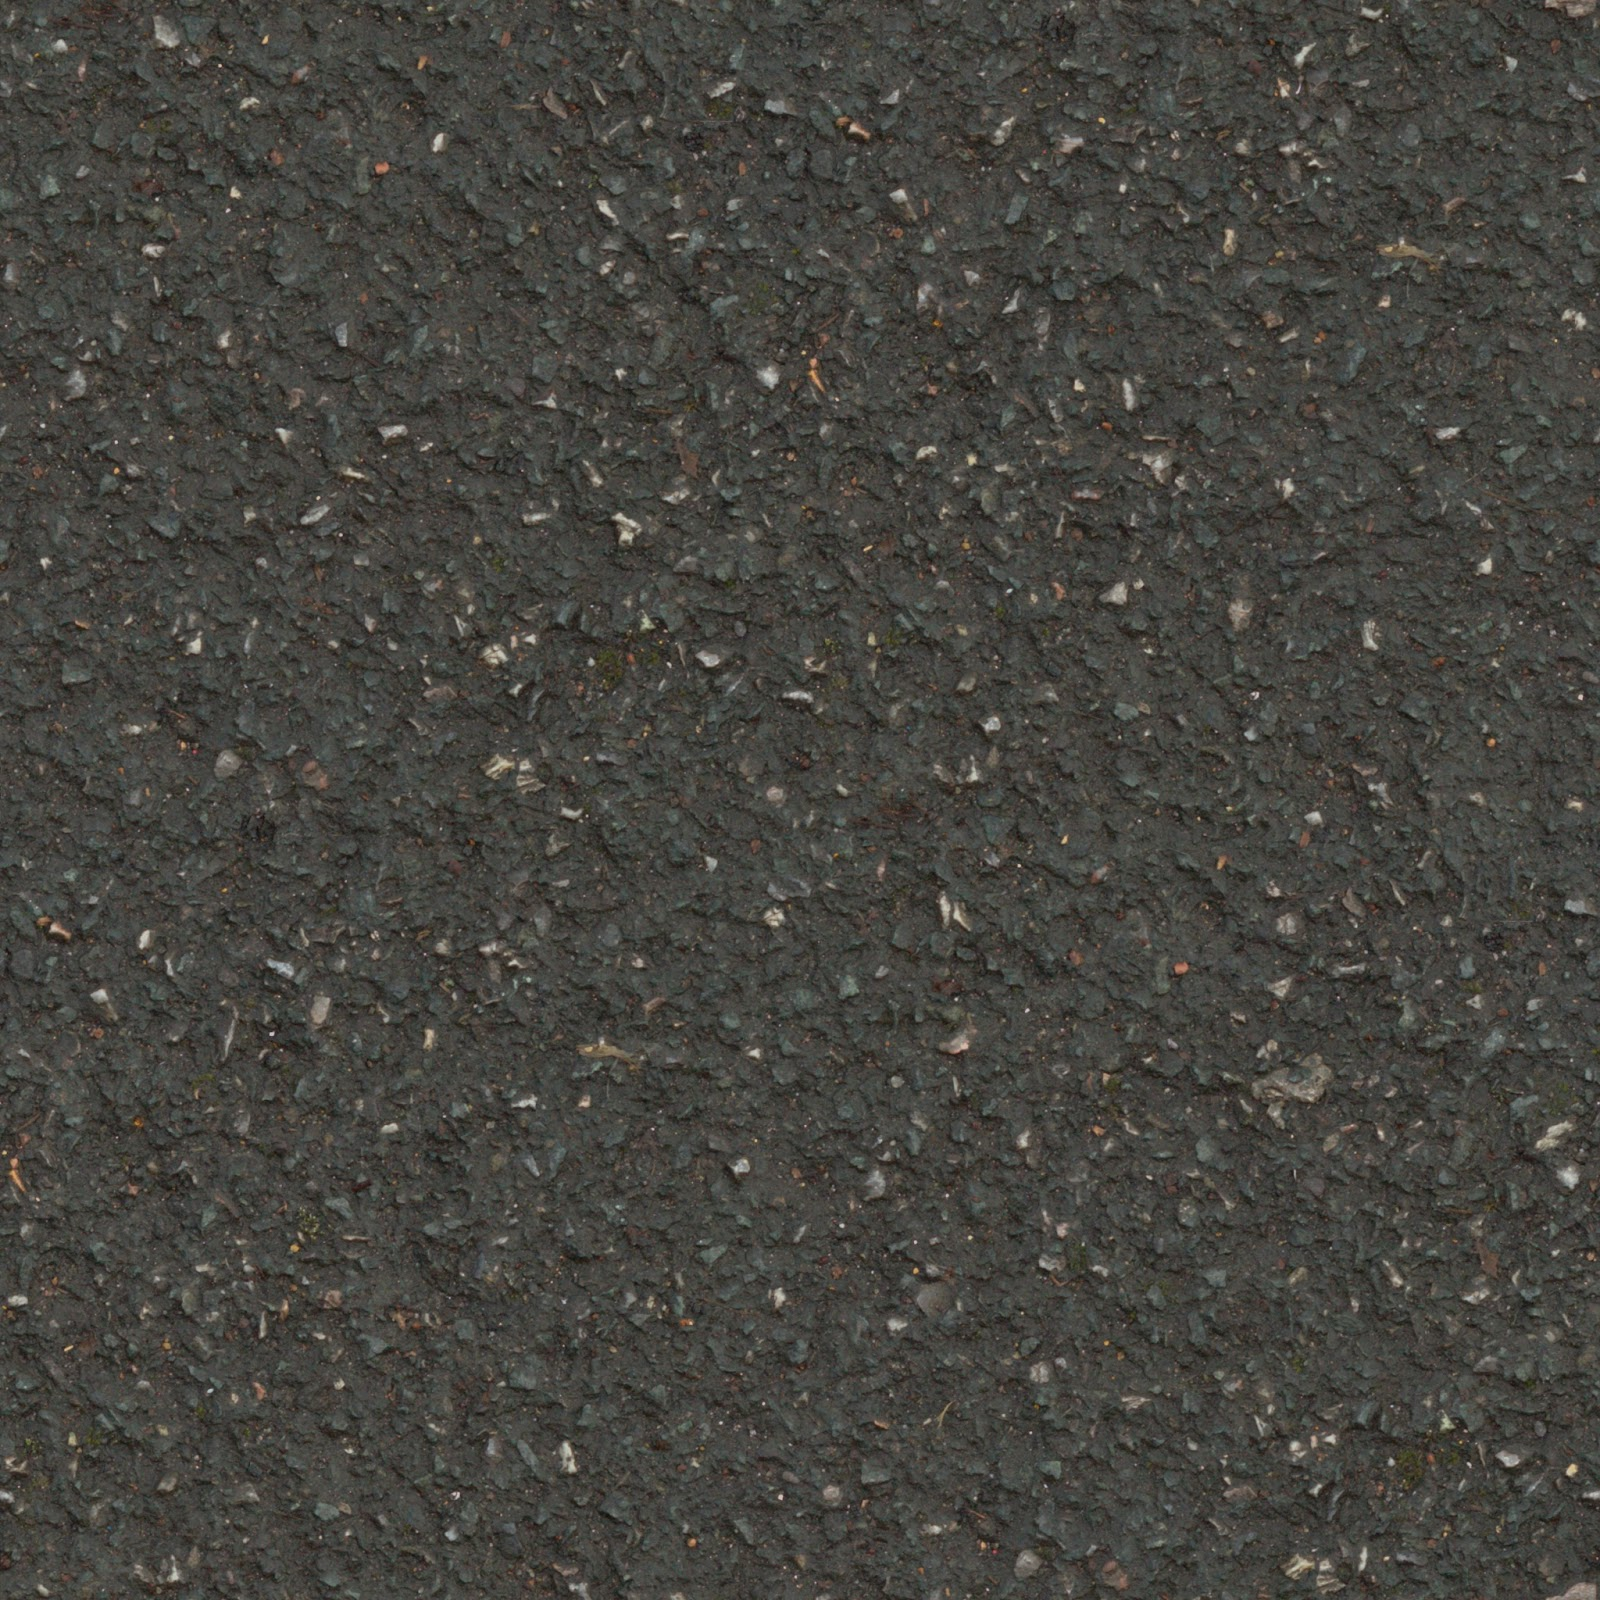 Asphalt road wet seamless texture 2048x2048